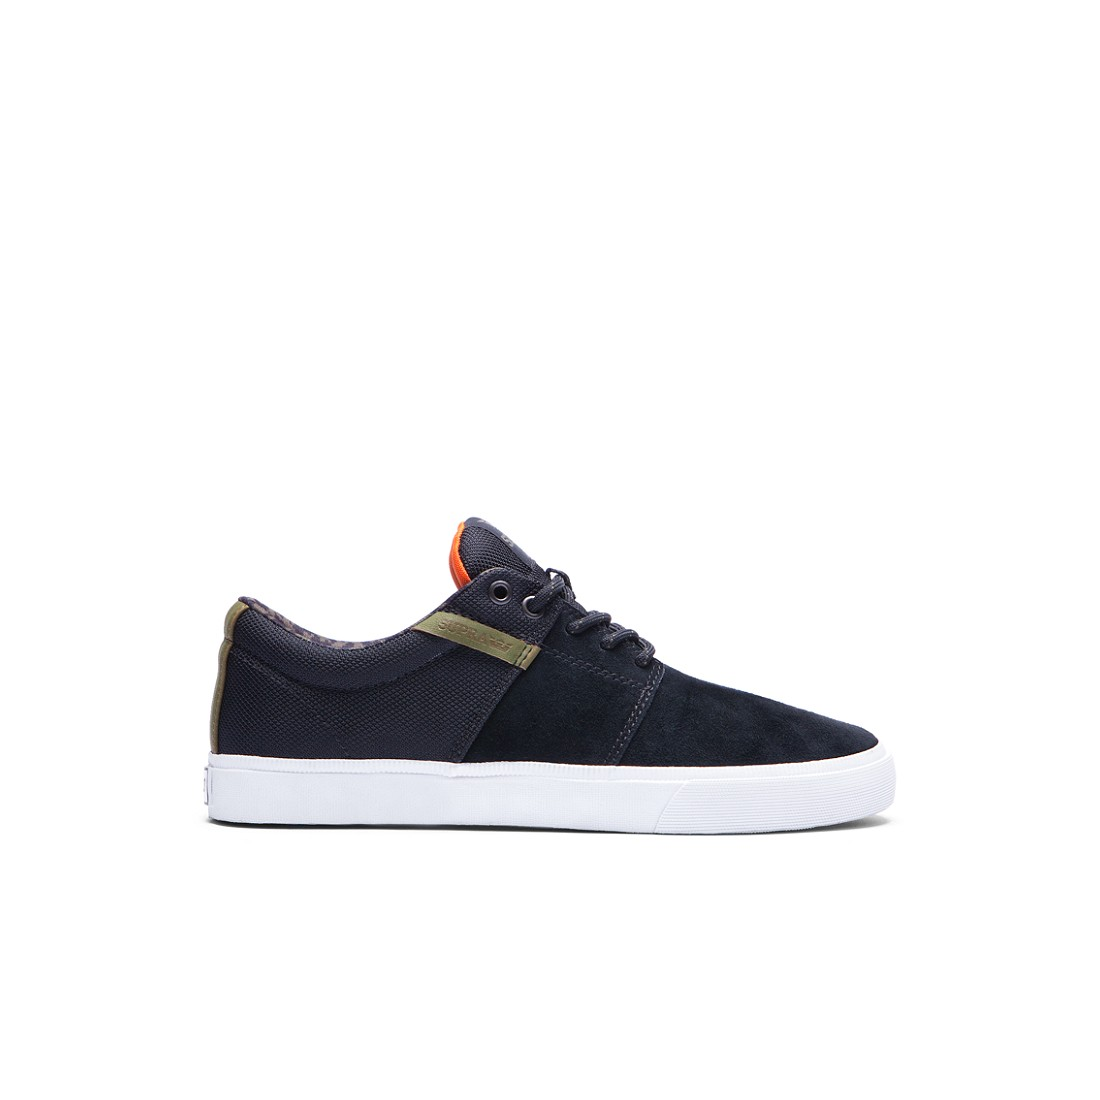 STACKS VULC II black